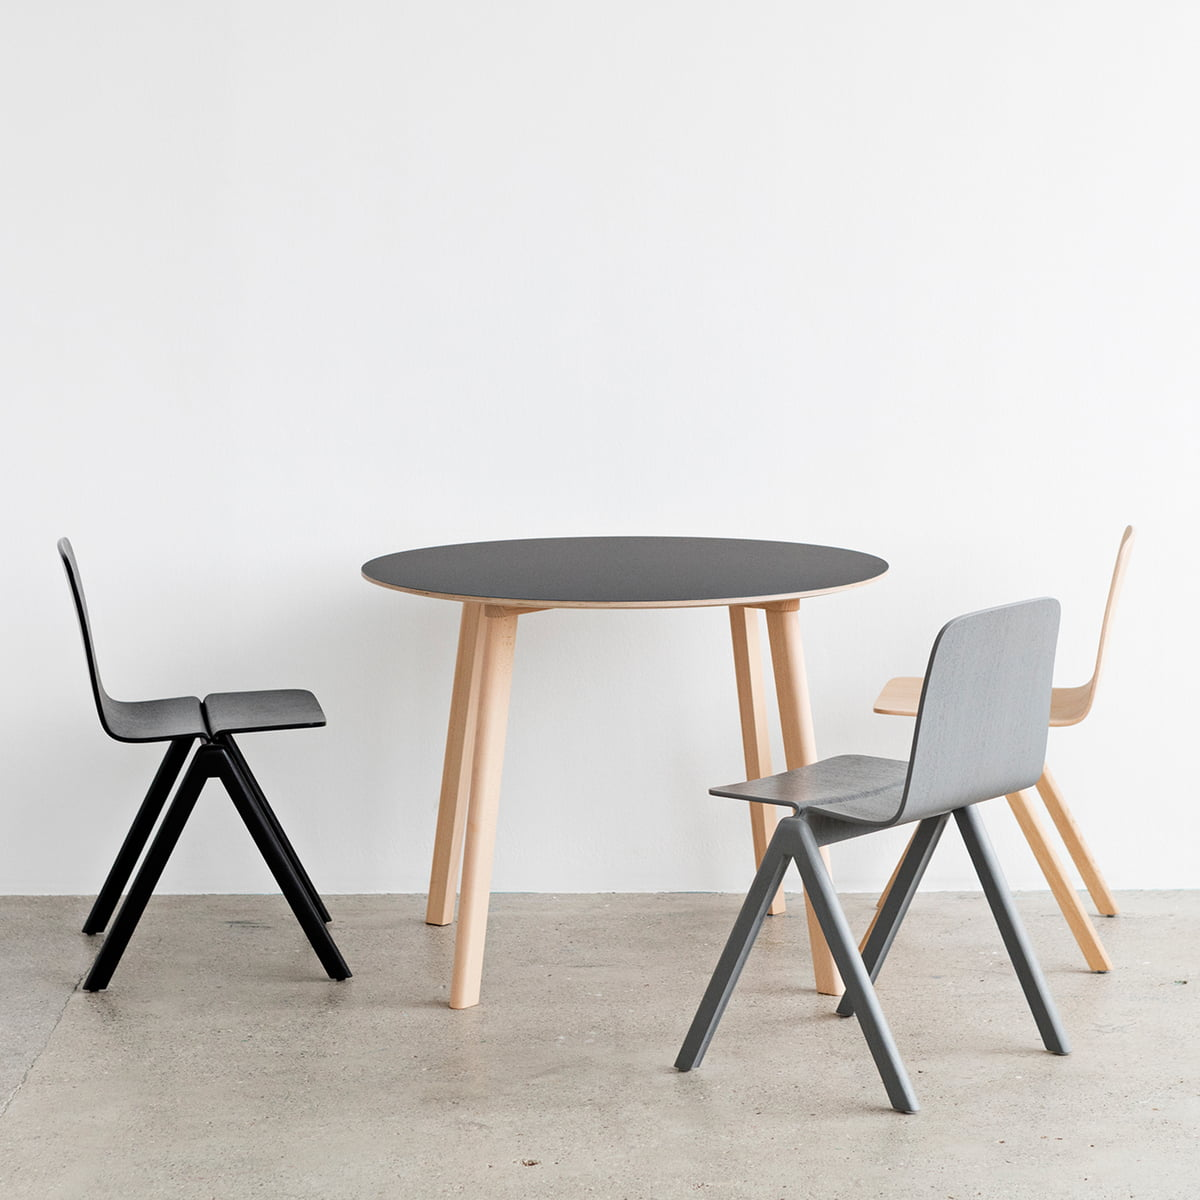 Hay Esstisch copenhague cph deux 220 table by hay in the shop